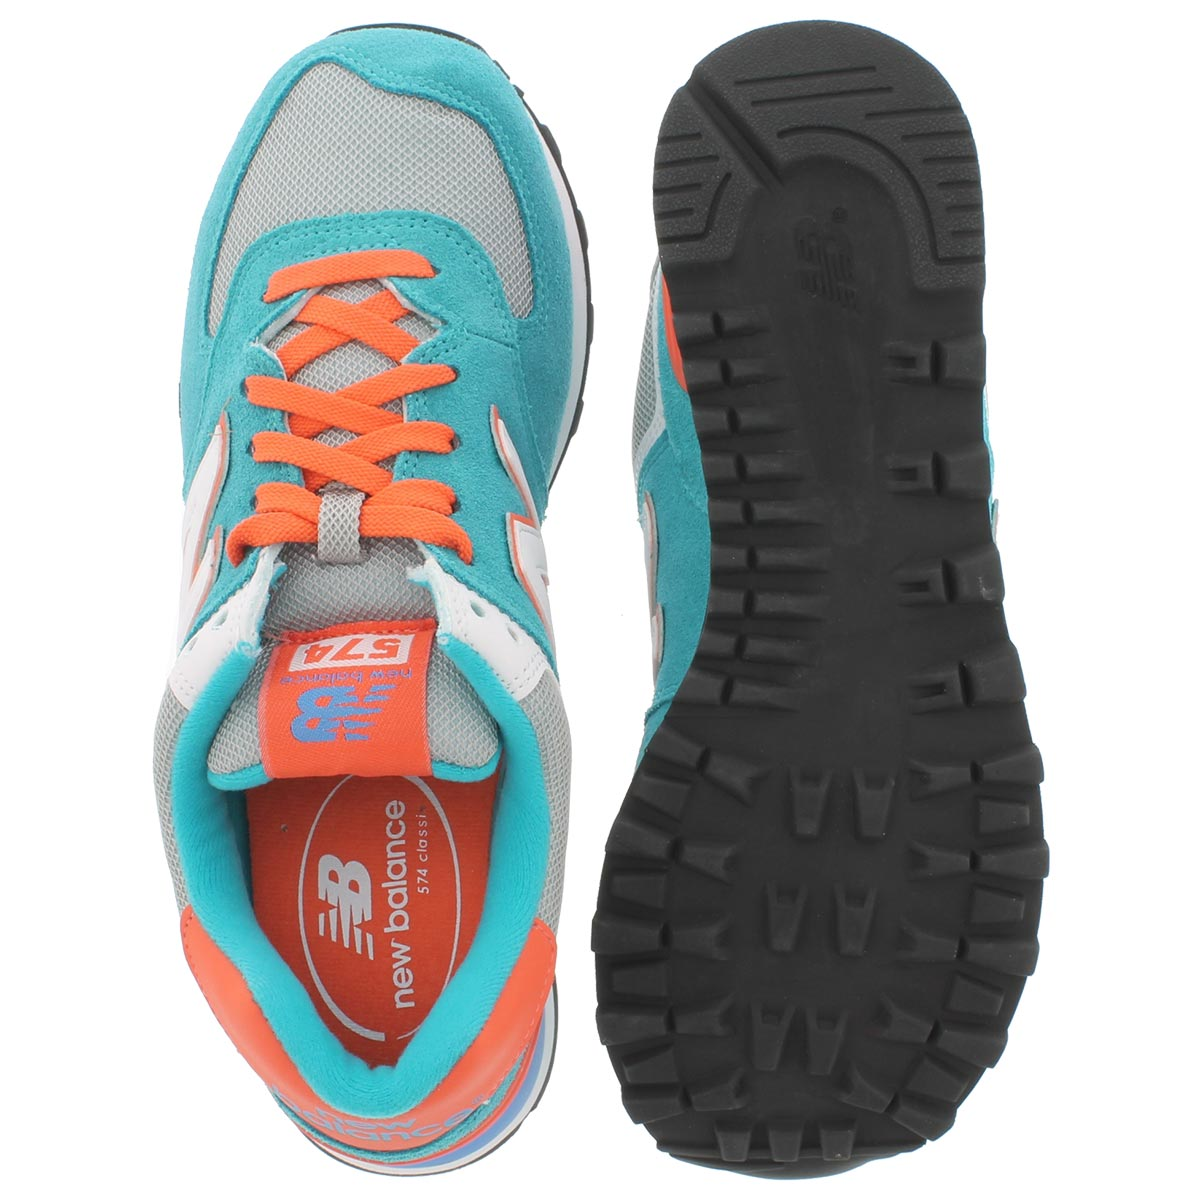 Lds 574 blue/orange lace up sneaker